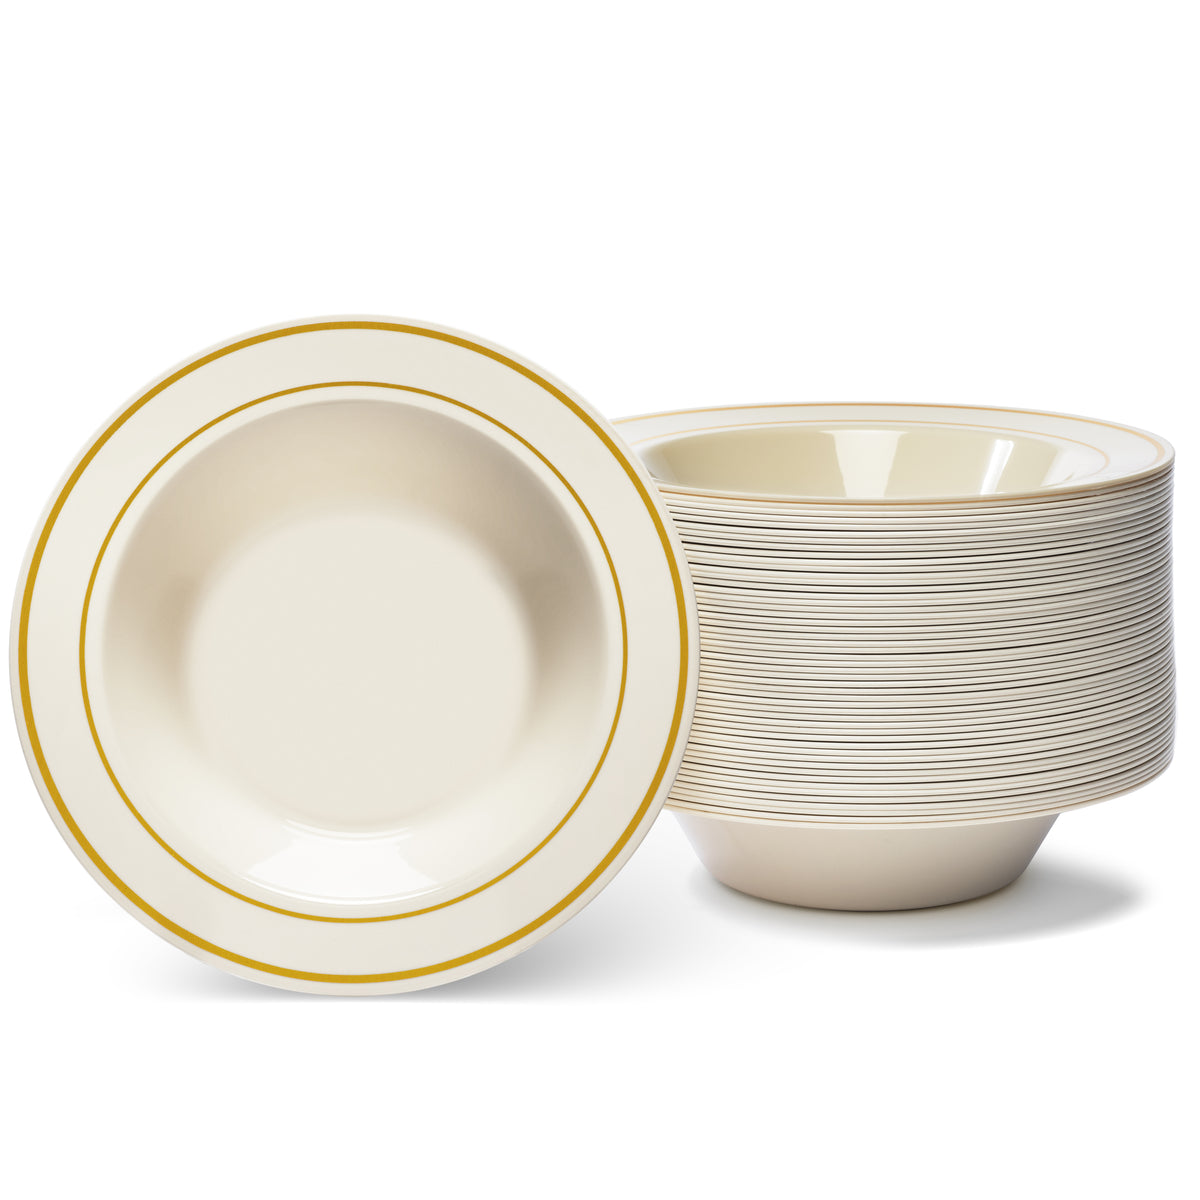 Gold Rimmed Ivory Bowls - 12 Oz - (50 Count)